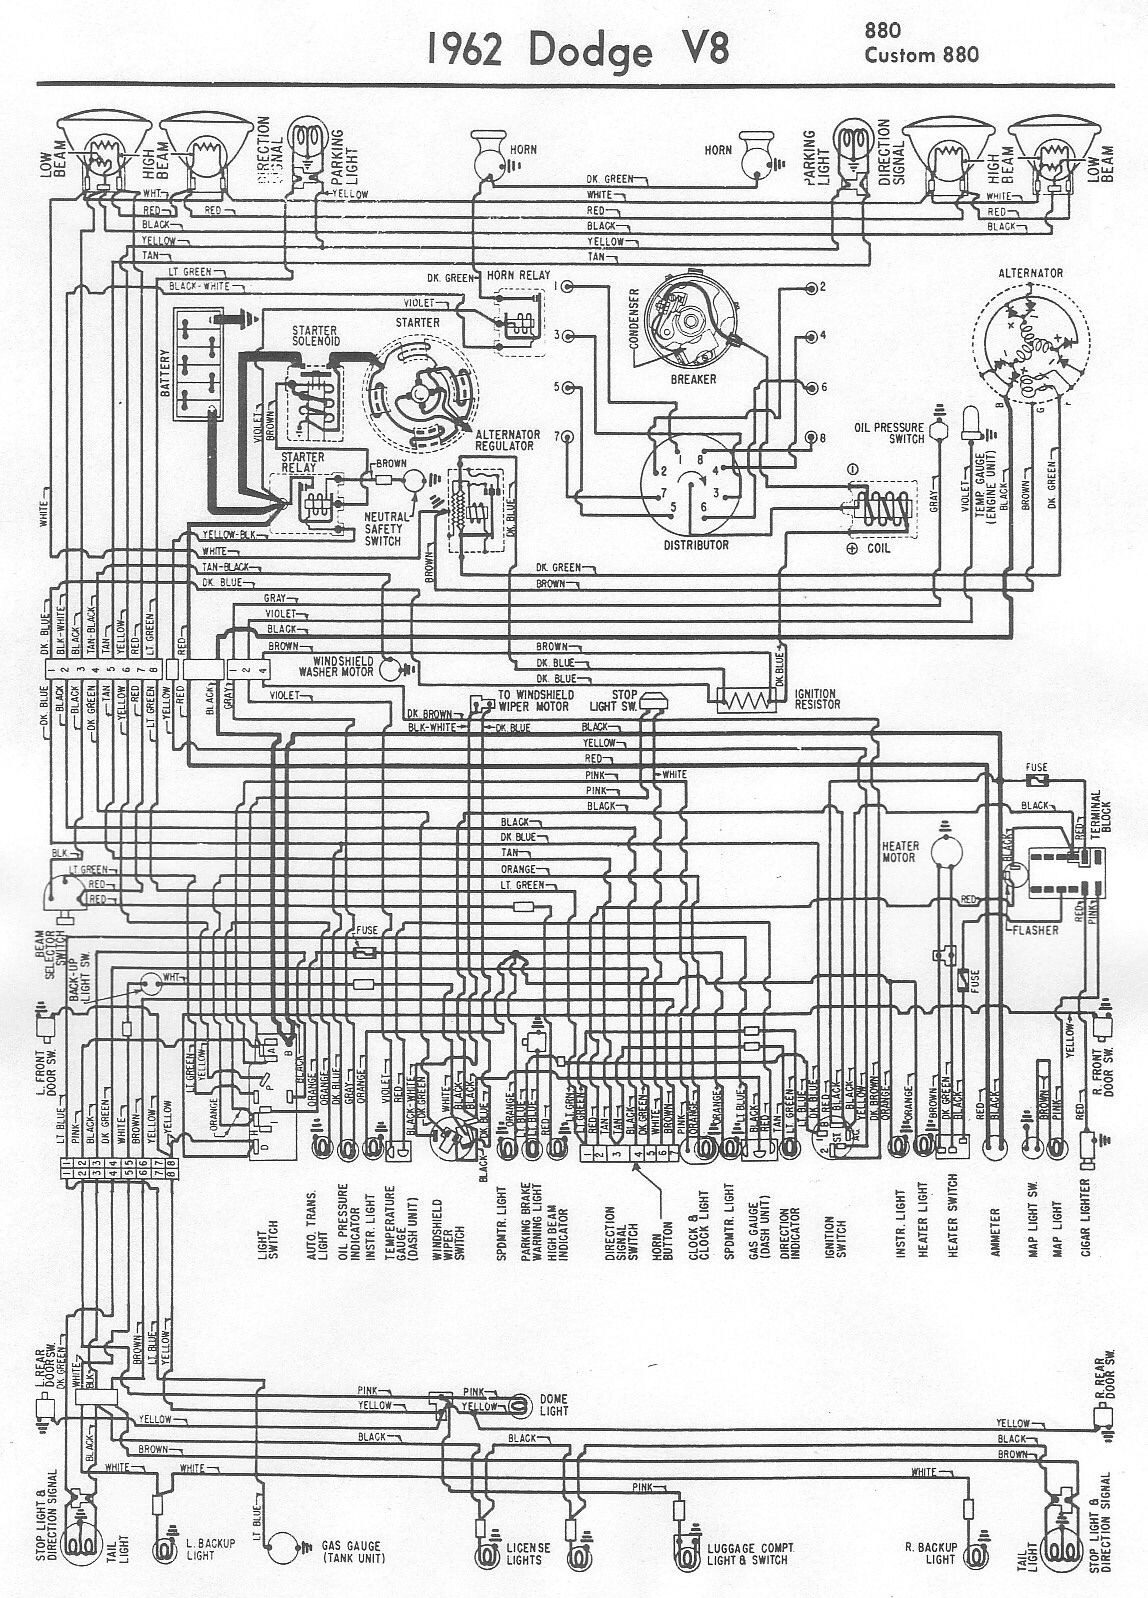 Free Auto    Wiring       Diagram     1962    Dodge    880    Wiring       Diagram